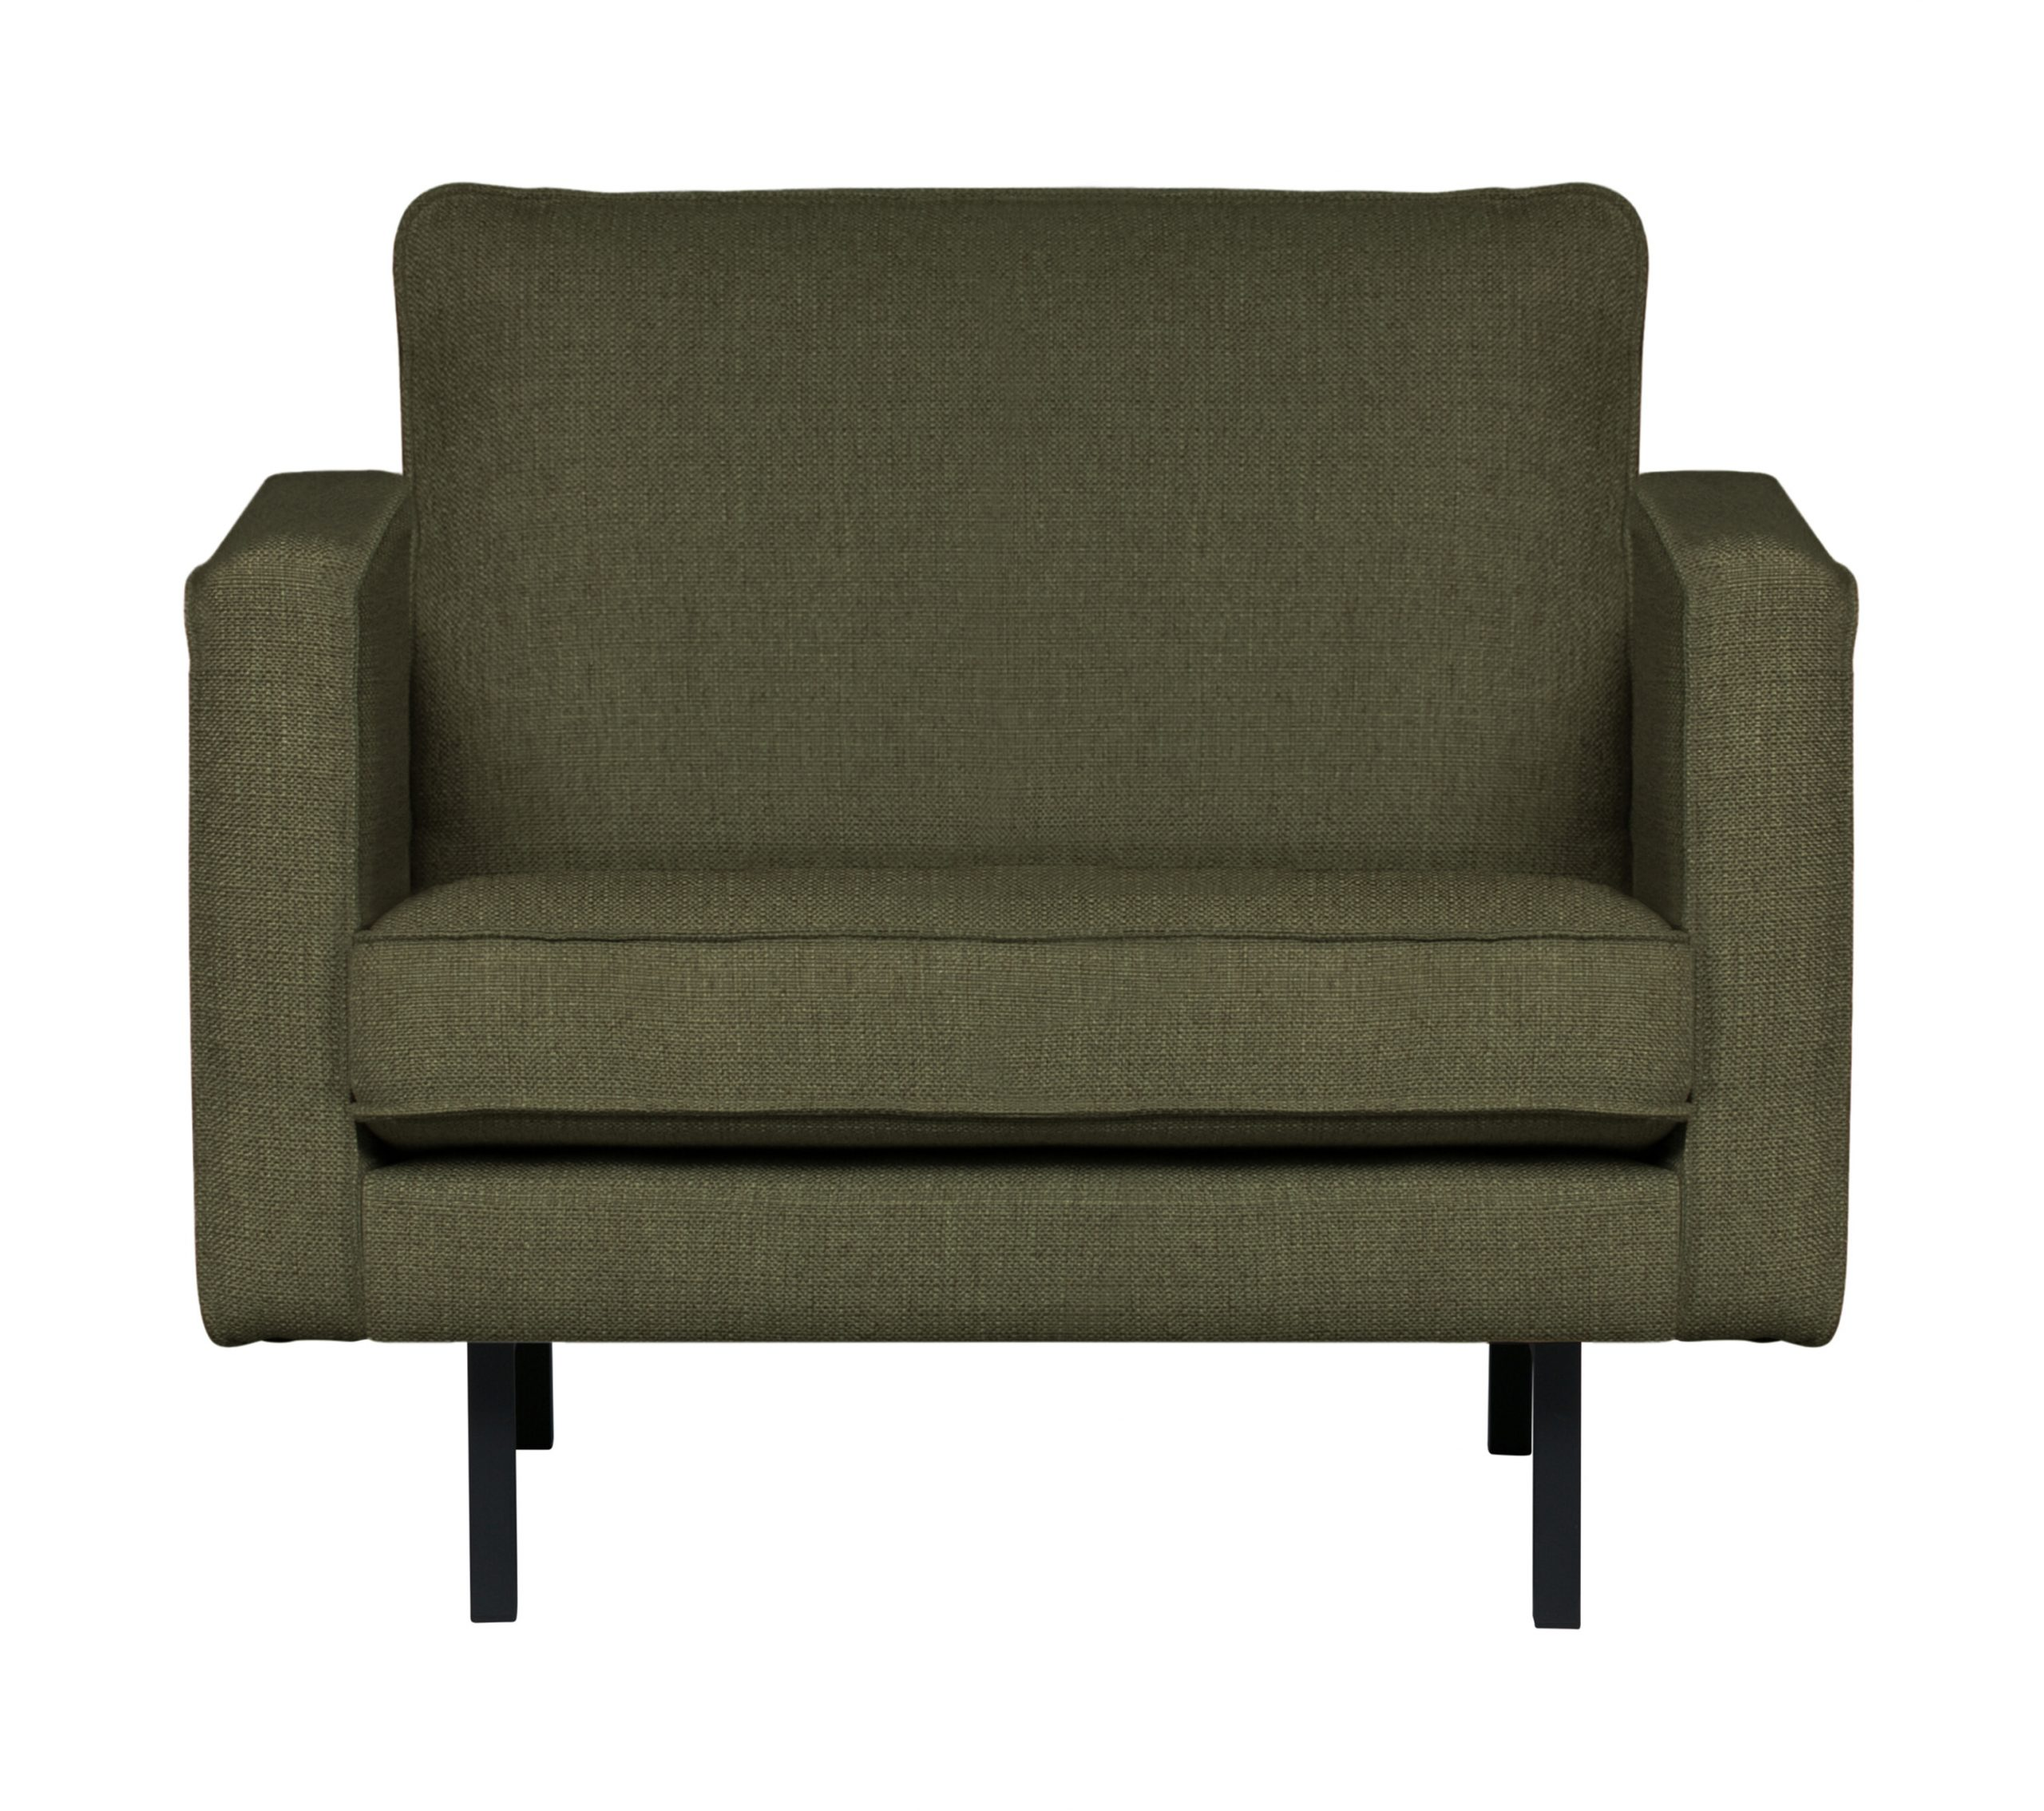 BePureHome Fauteuil 'Rodeo' Stretched, kleur Tea Leave | BePureHome